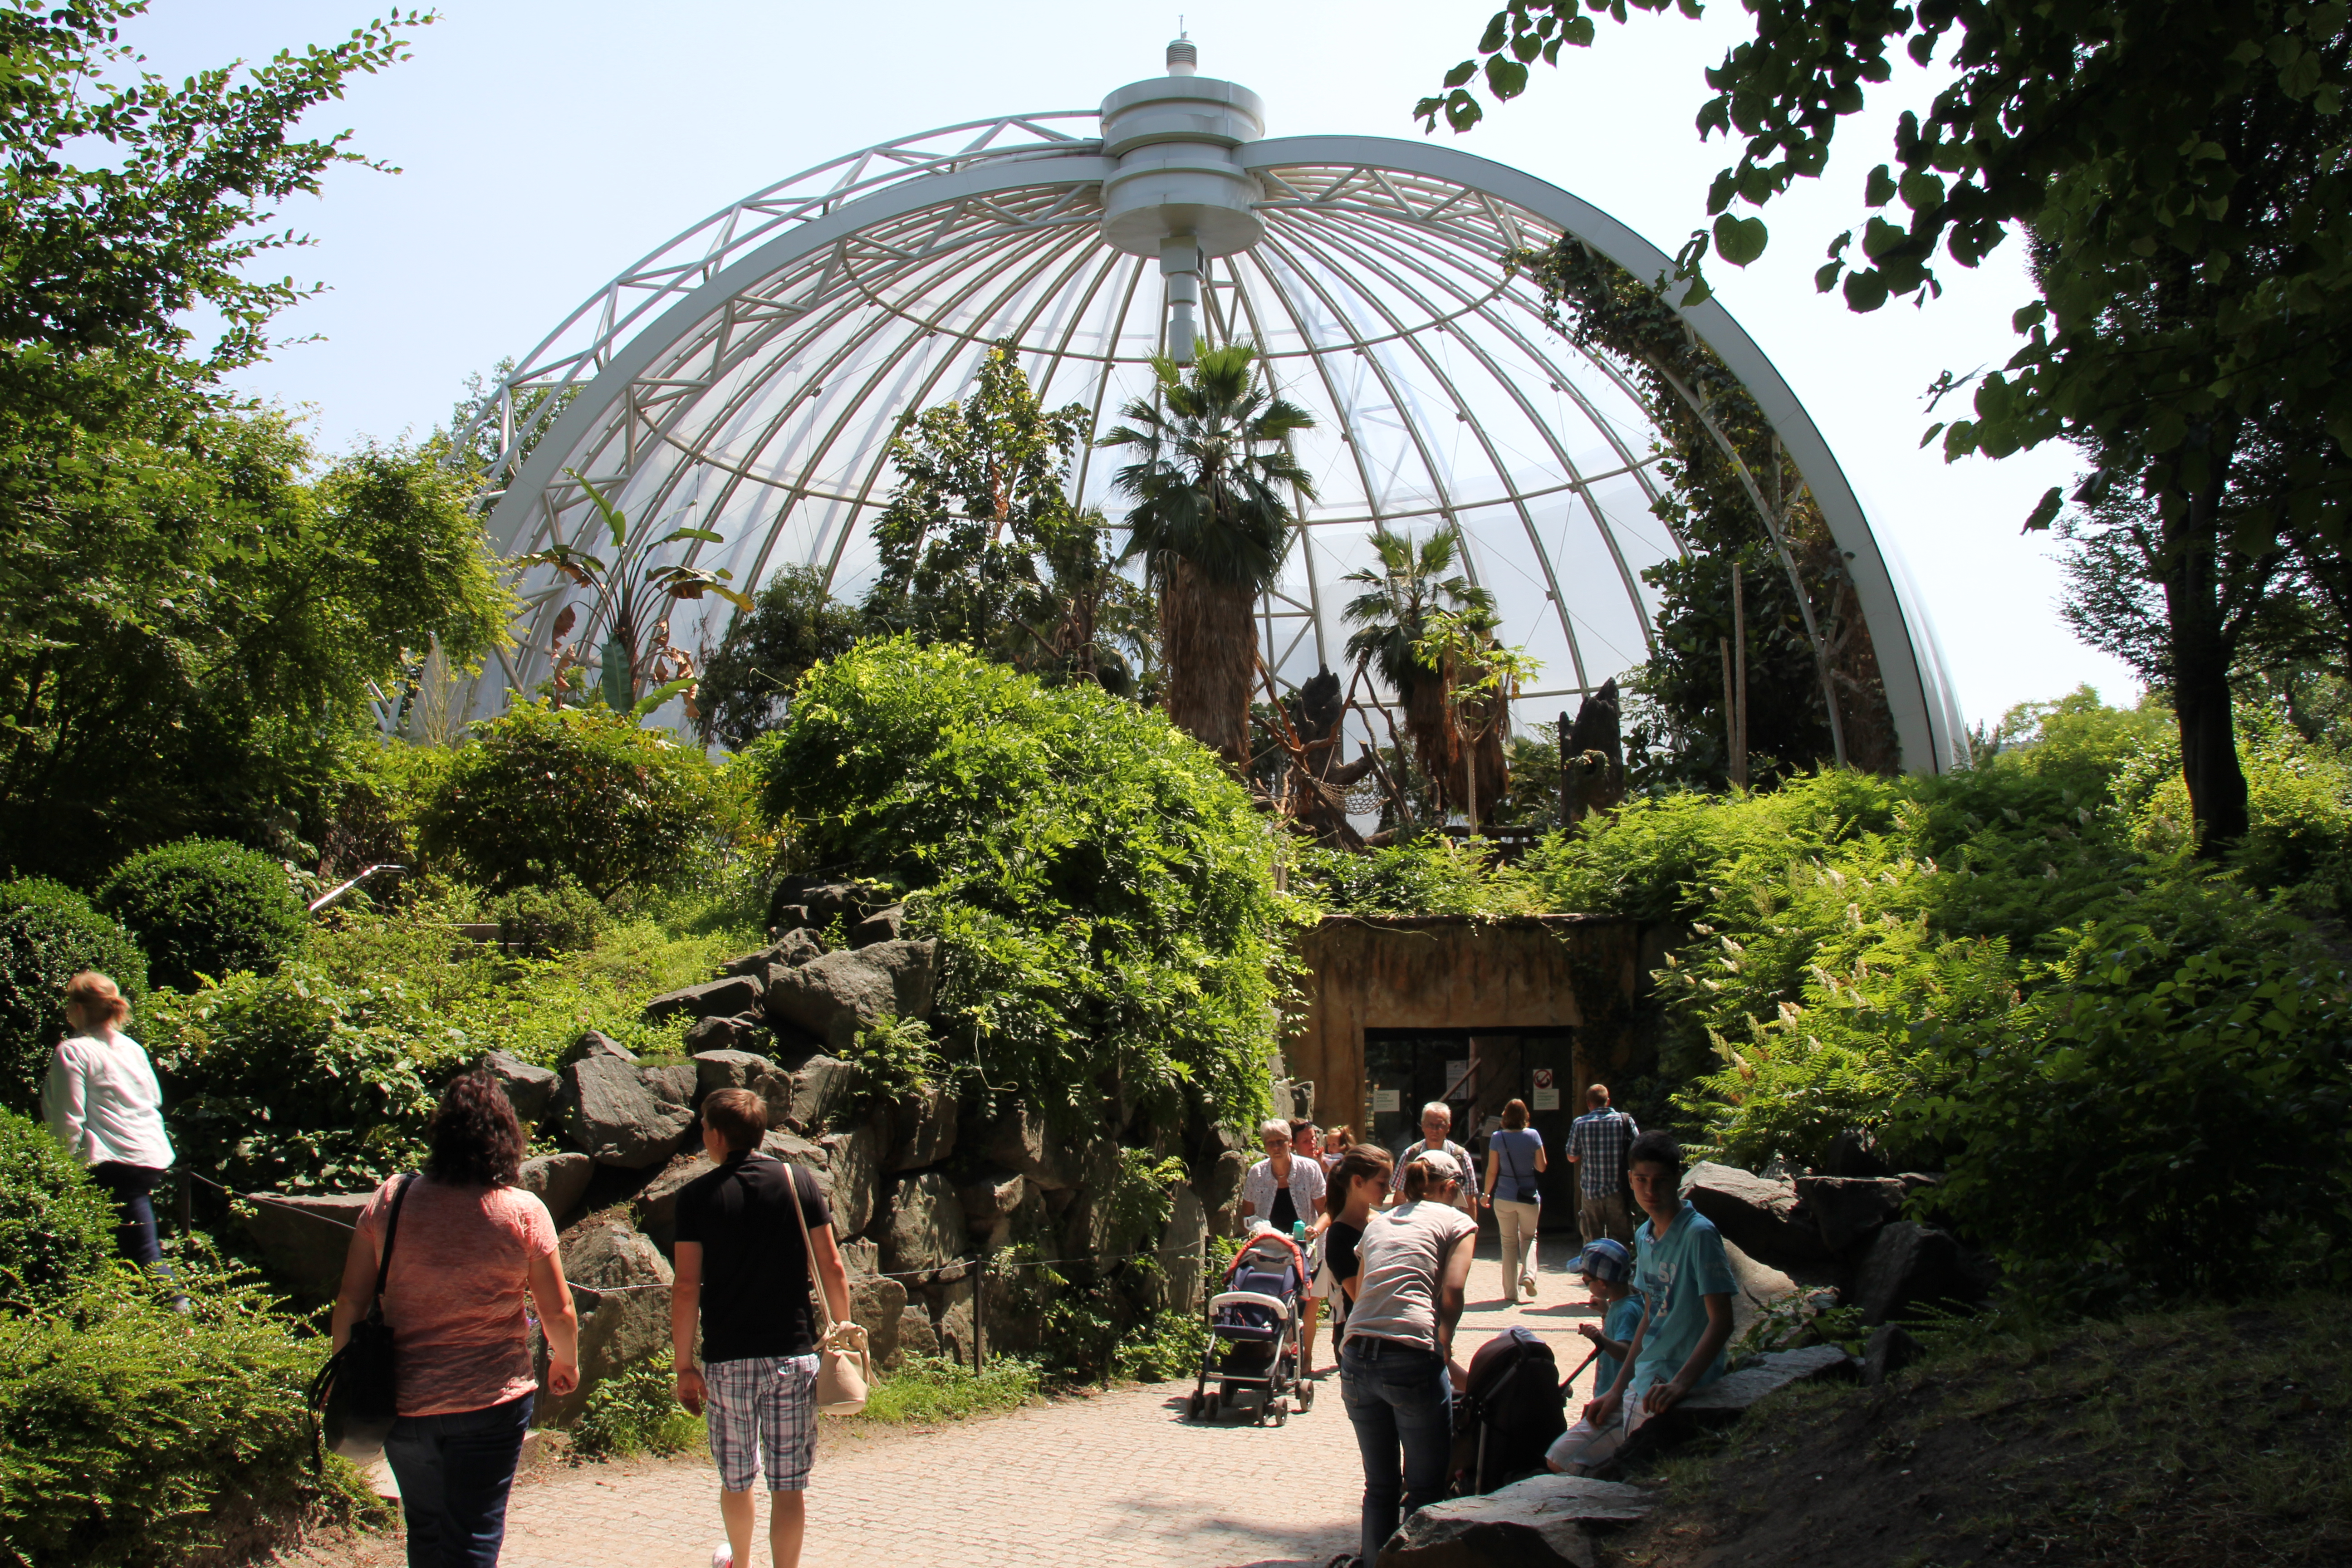 things to do in Hamburg with kids - hamburg zoo tierpark hagenbeck - bad weather